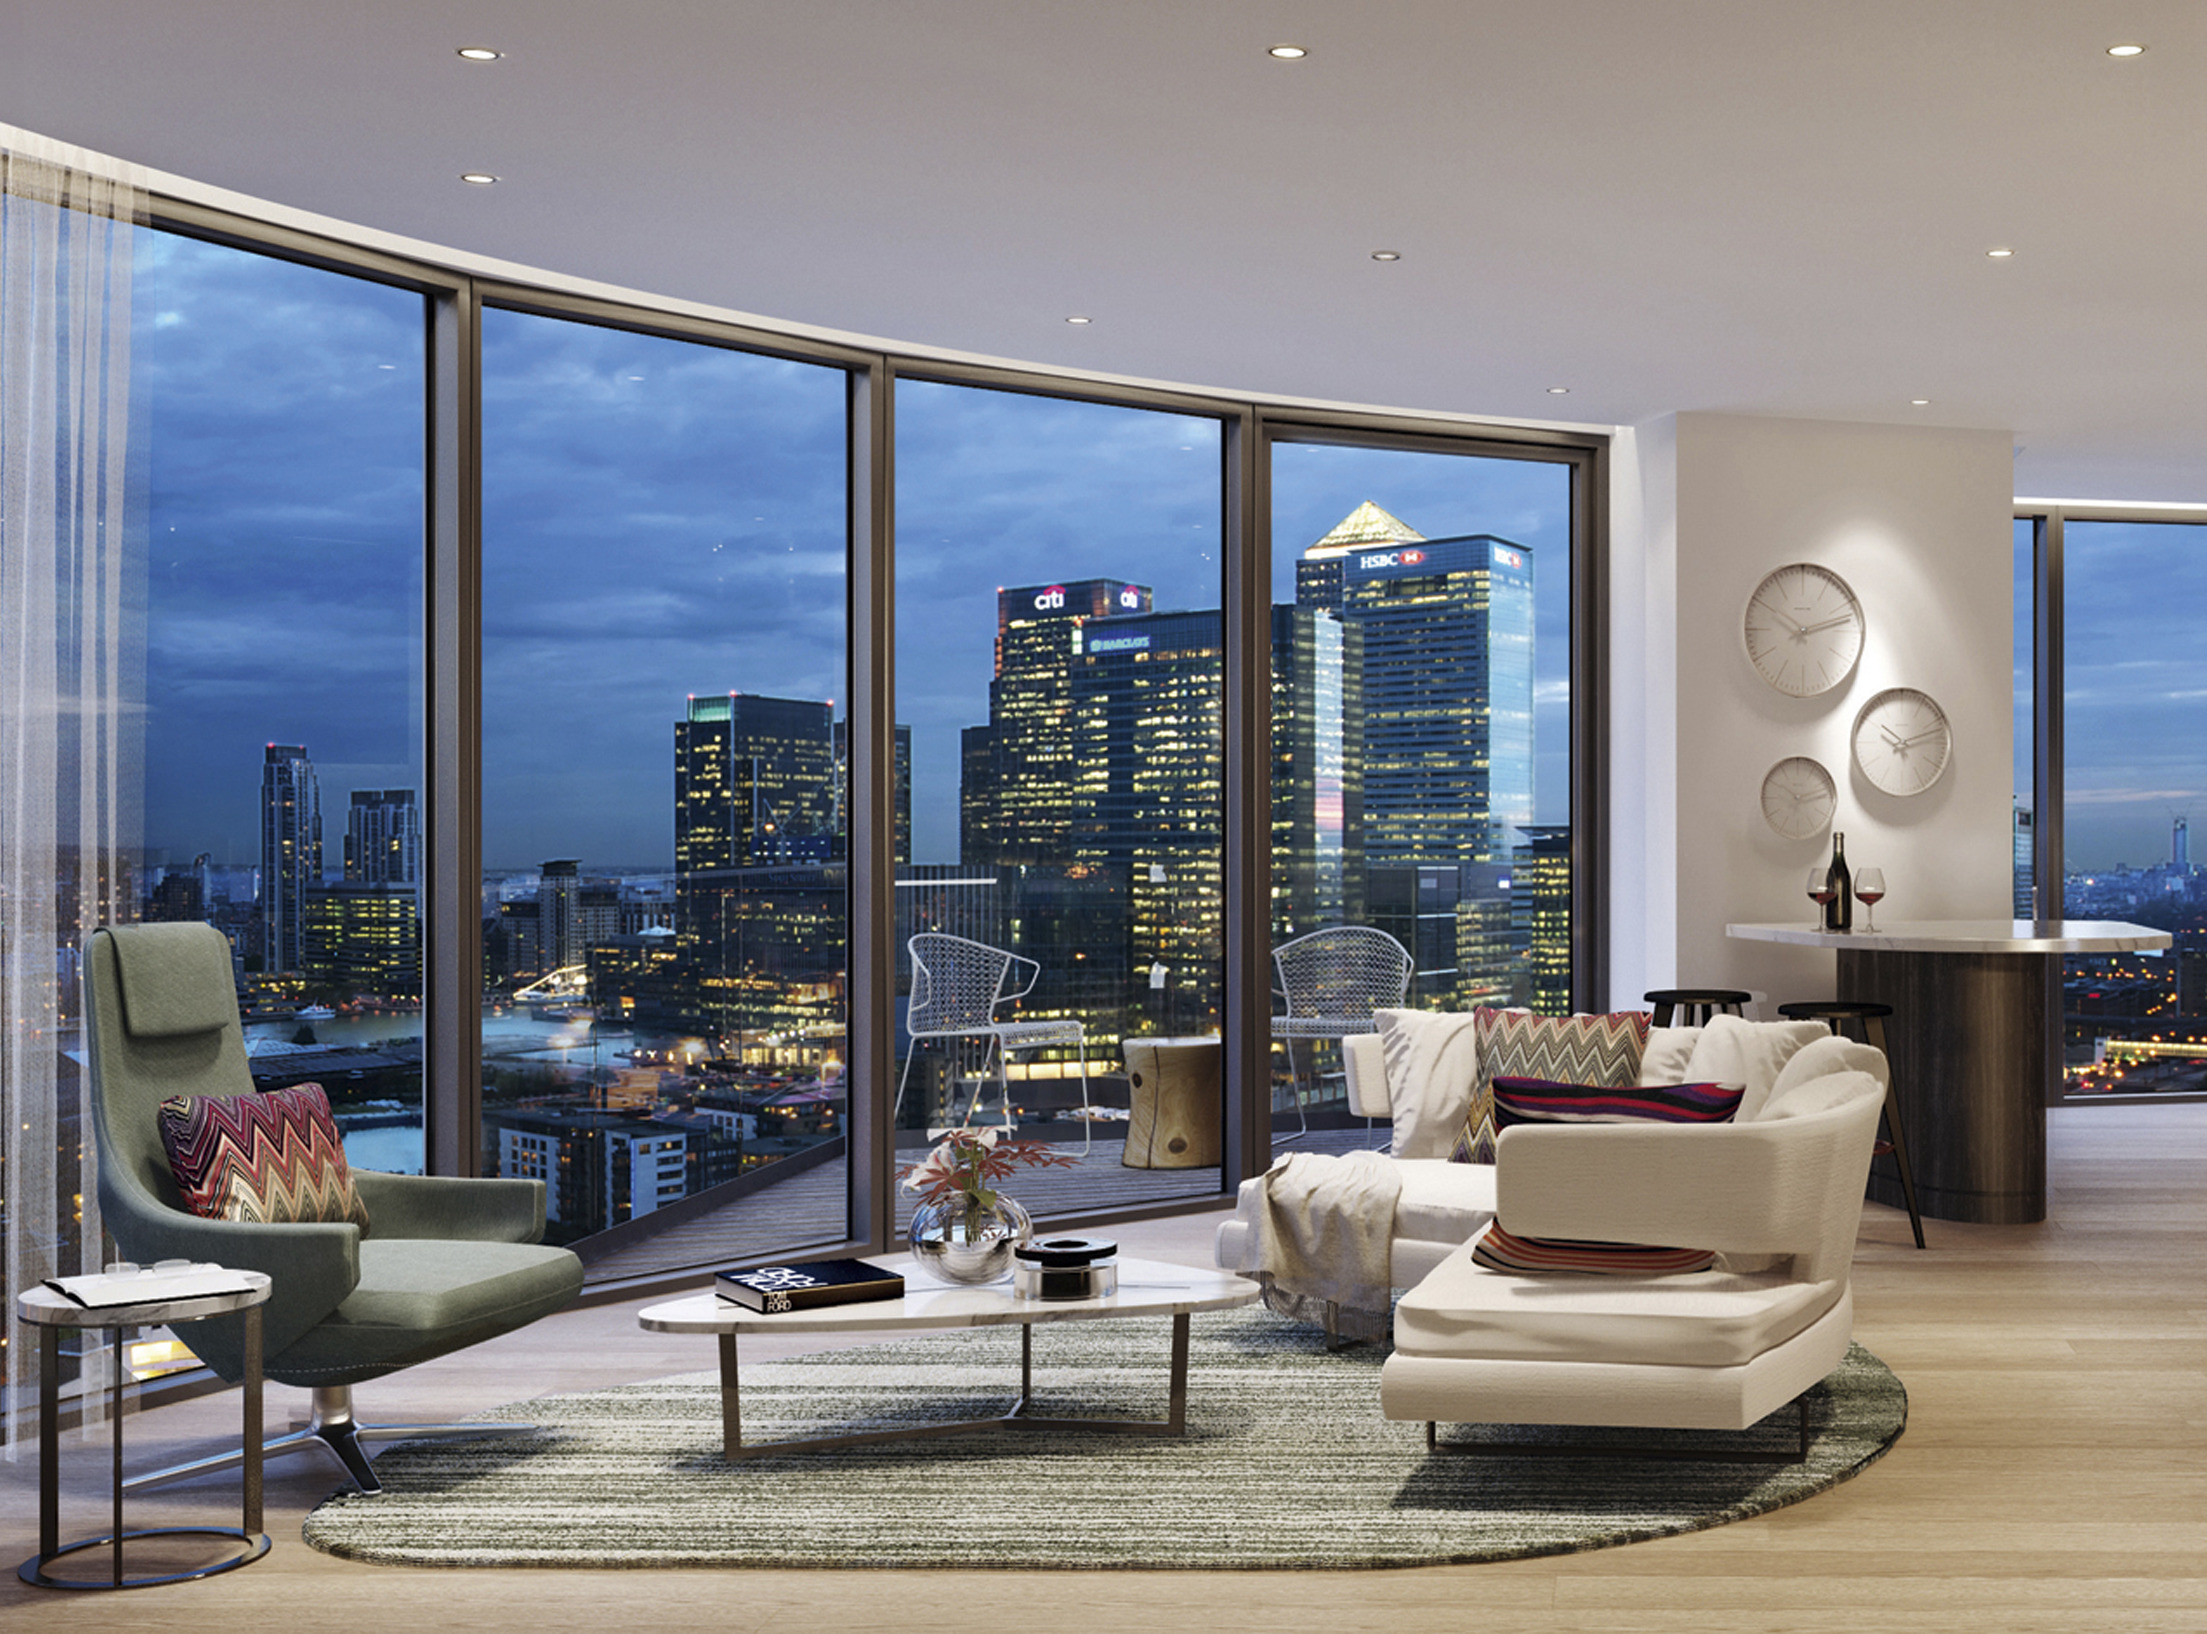 Canary Wharf Apartments To Buy - acompleteimpossibility